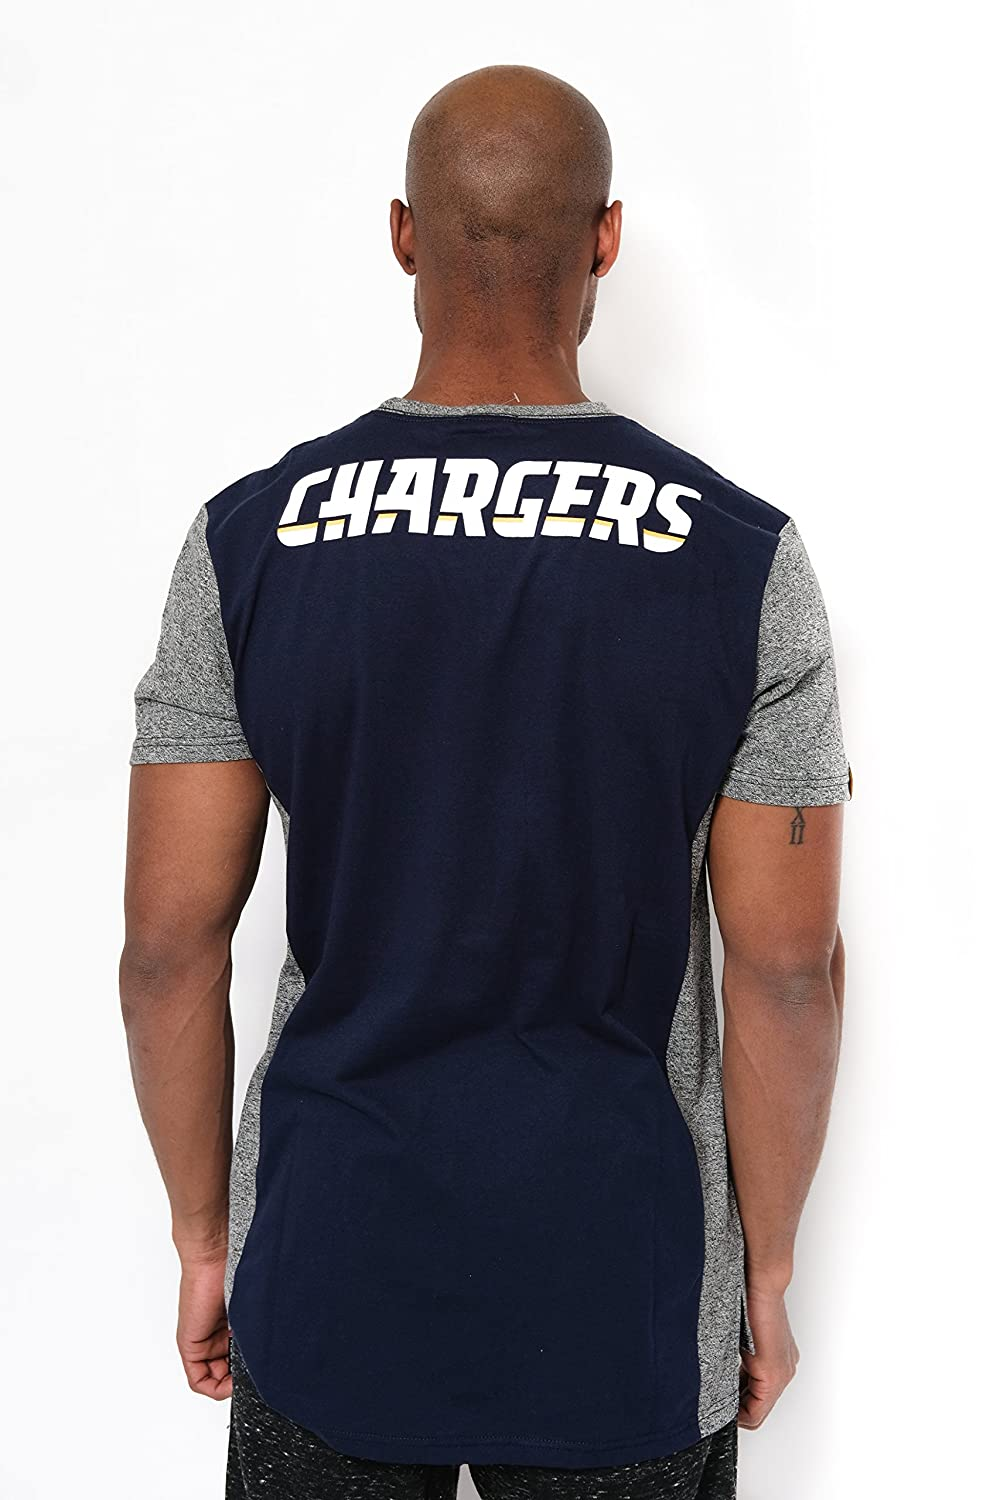 733452d8 Ultra Game NFL Los Angeles Chargers Men's T Raglan Block Short Sleeve Tee  Shirt, Team Color, Navy, Medium